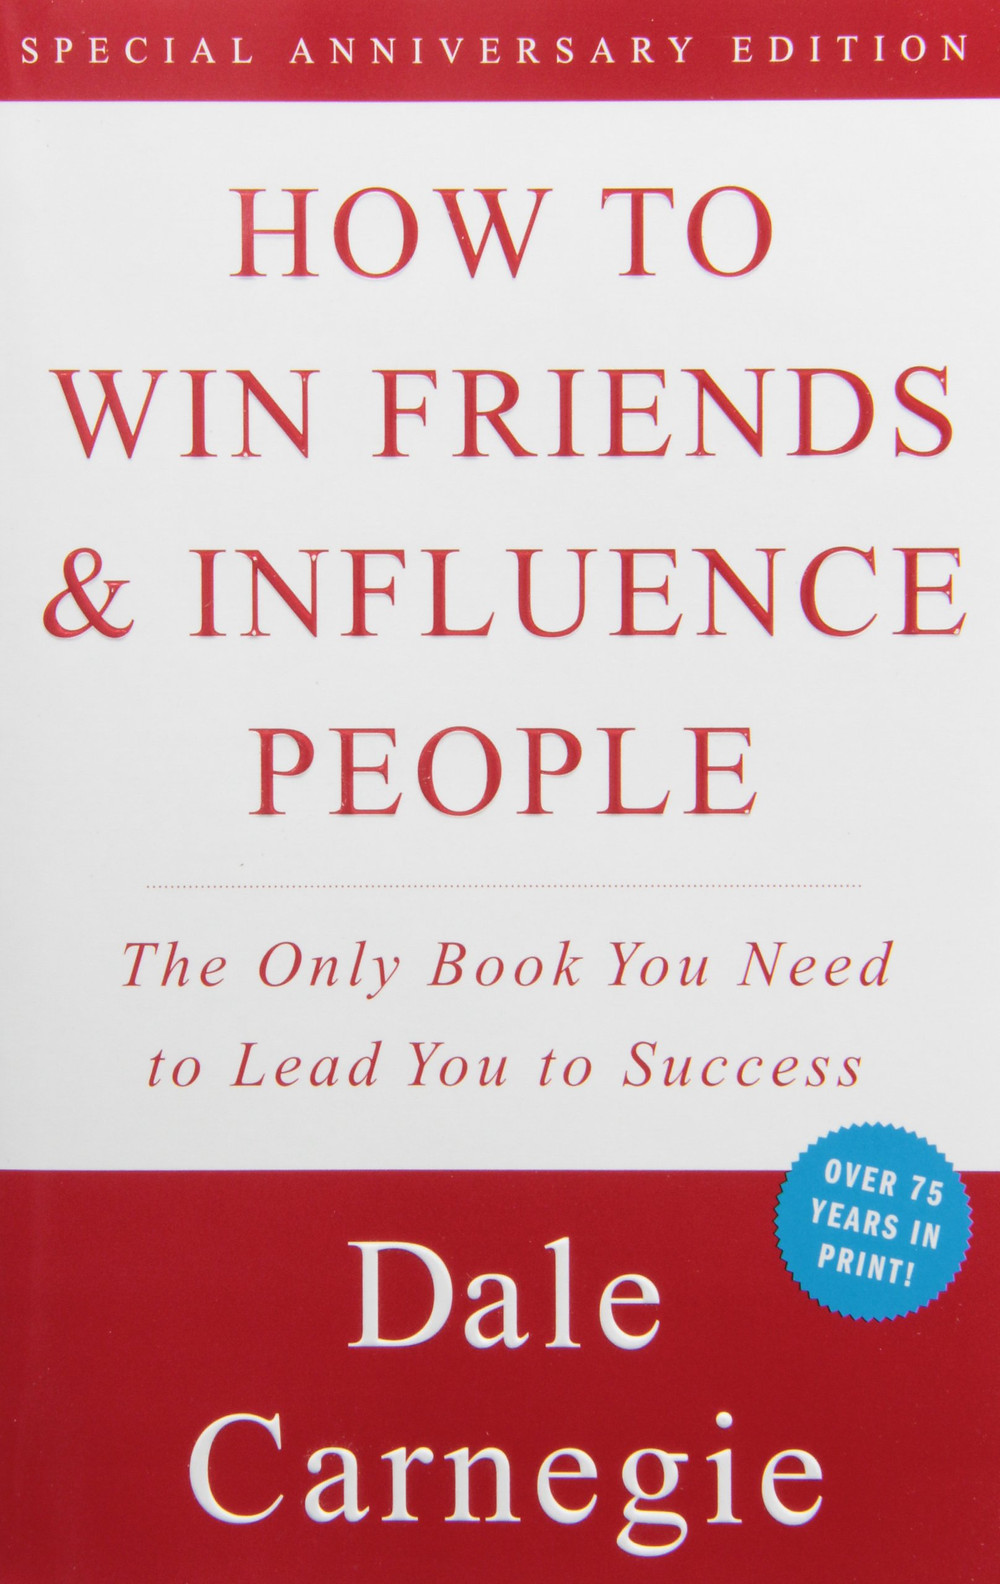 Dale Carnegie. How to Win Friends and Influence People. Inspiration for Projects. Destiny Yarbro